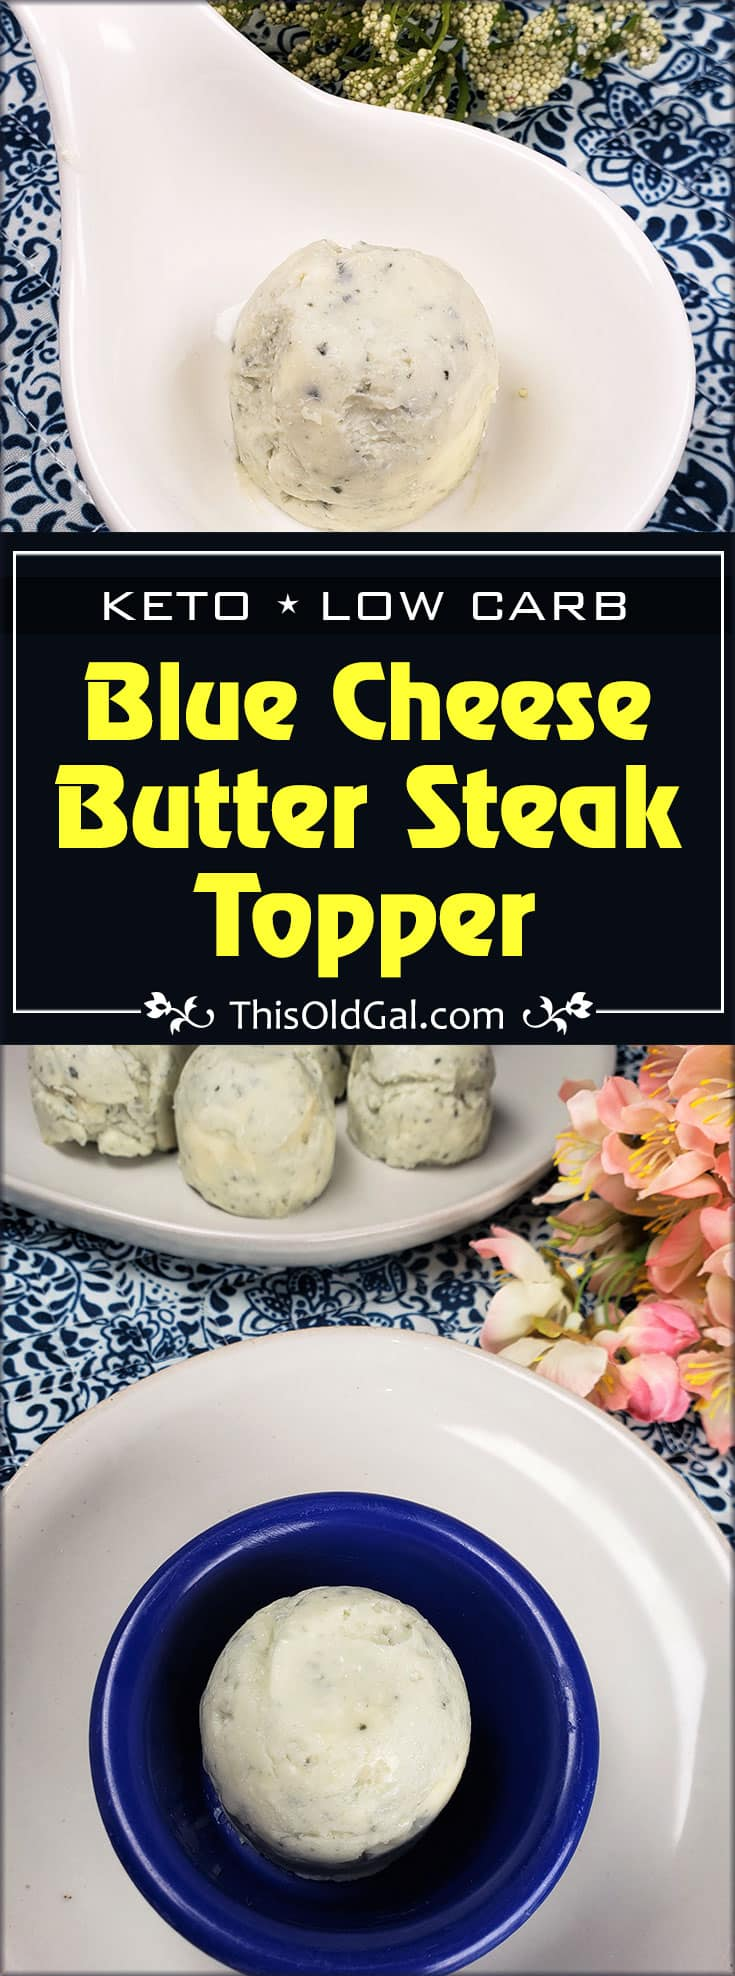 Blue Cheese Butter Steak Topper ~ Savory Keto Fat Bomb.